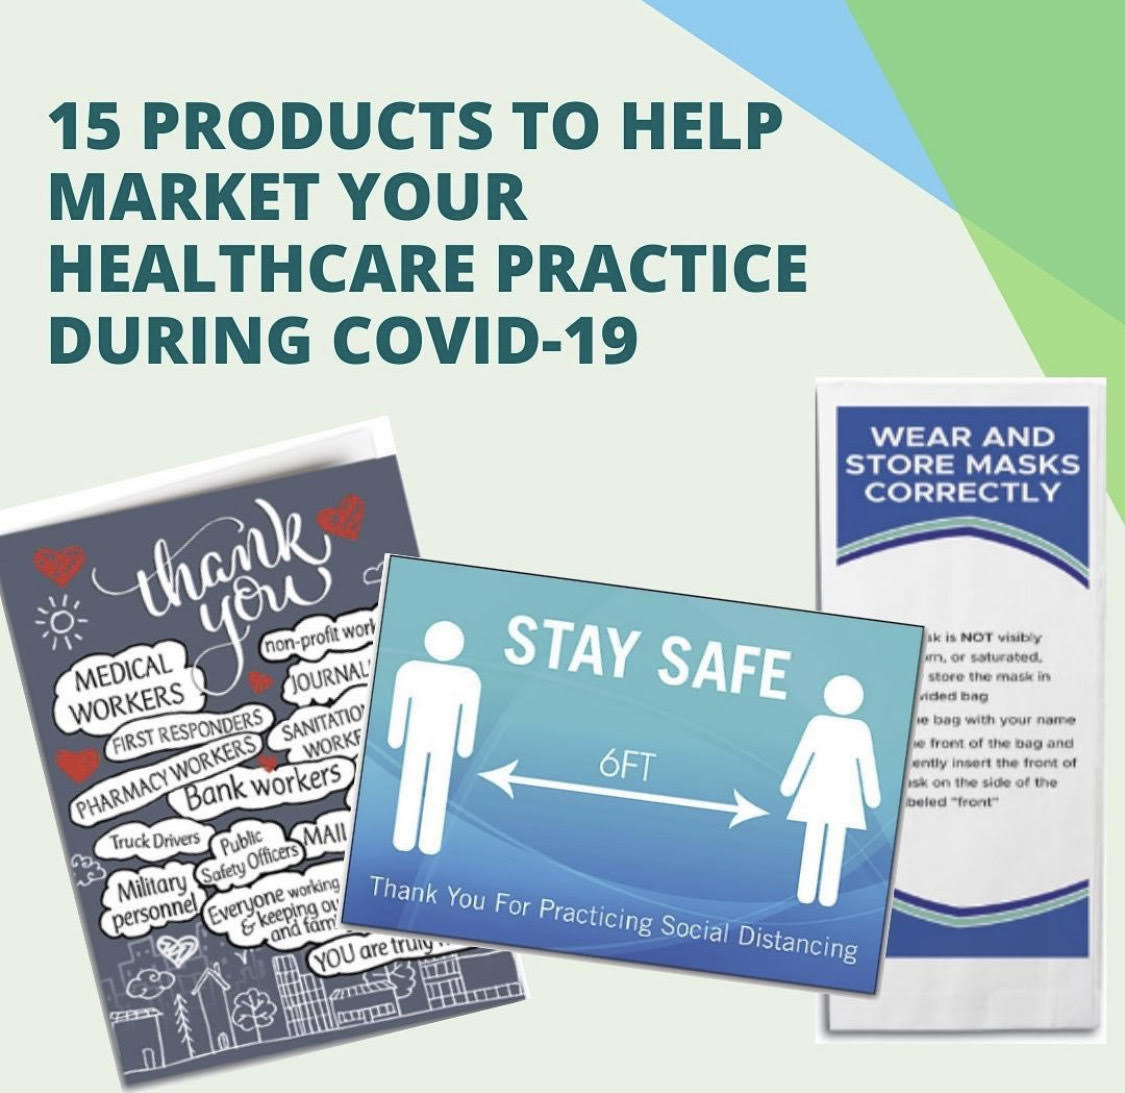 Healthcare Marketing During Covid